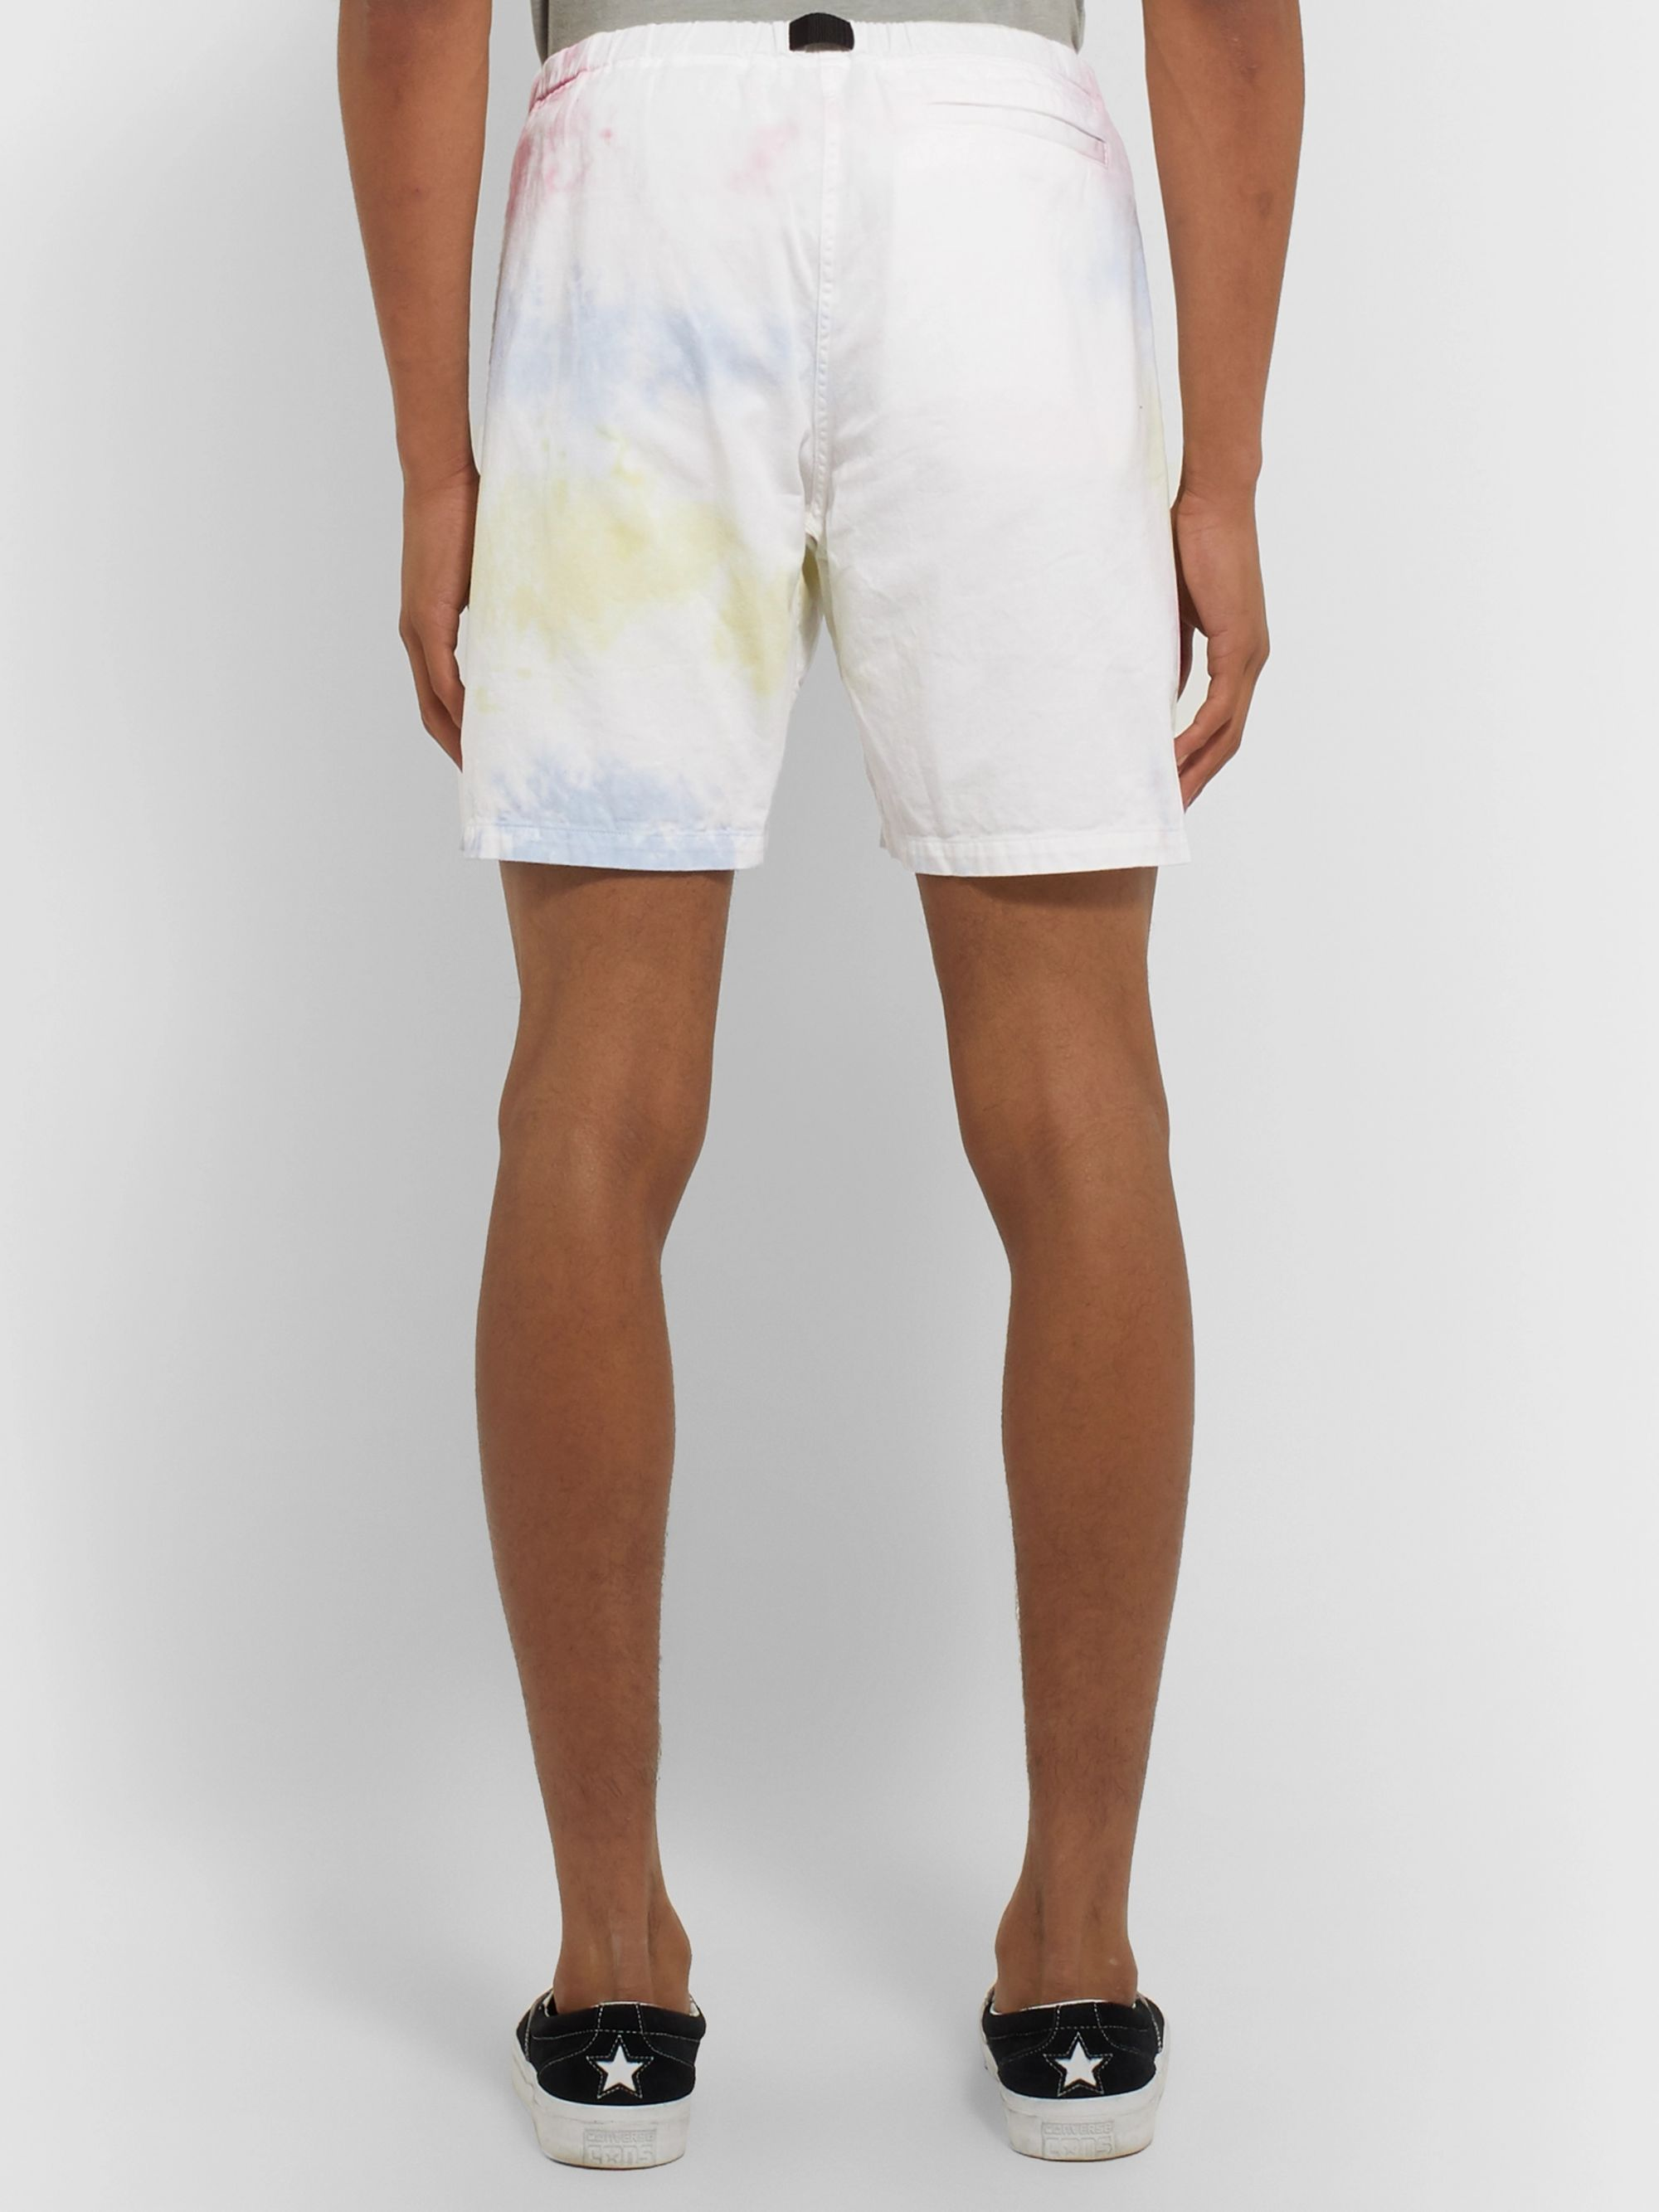 John Elliott Tie-Dyed Cotton Shorts